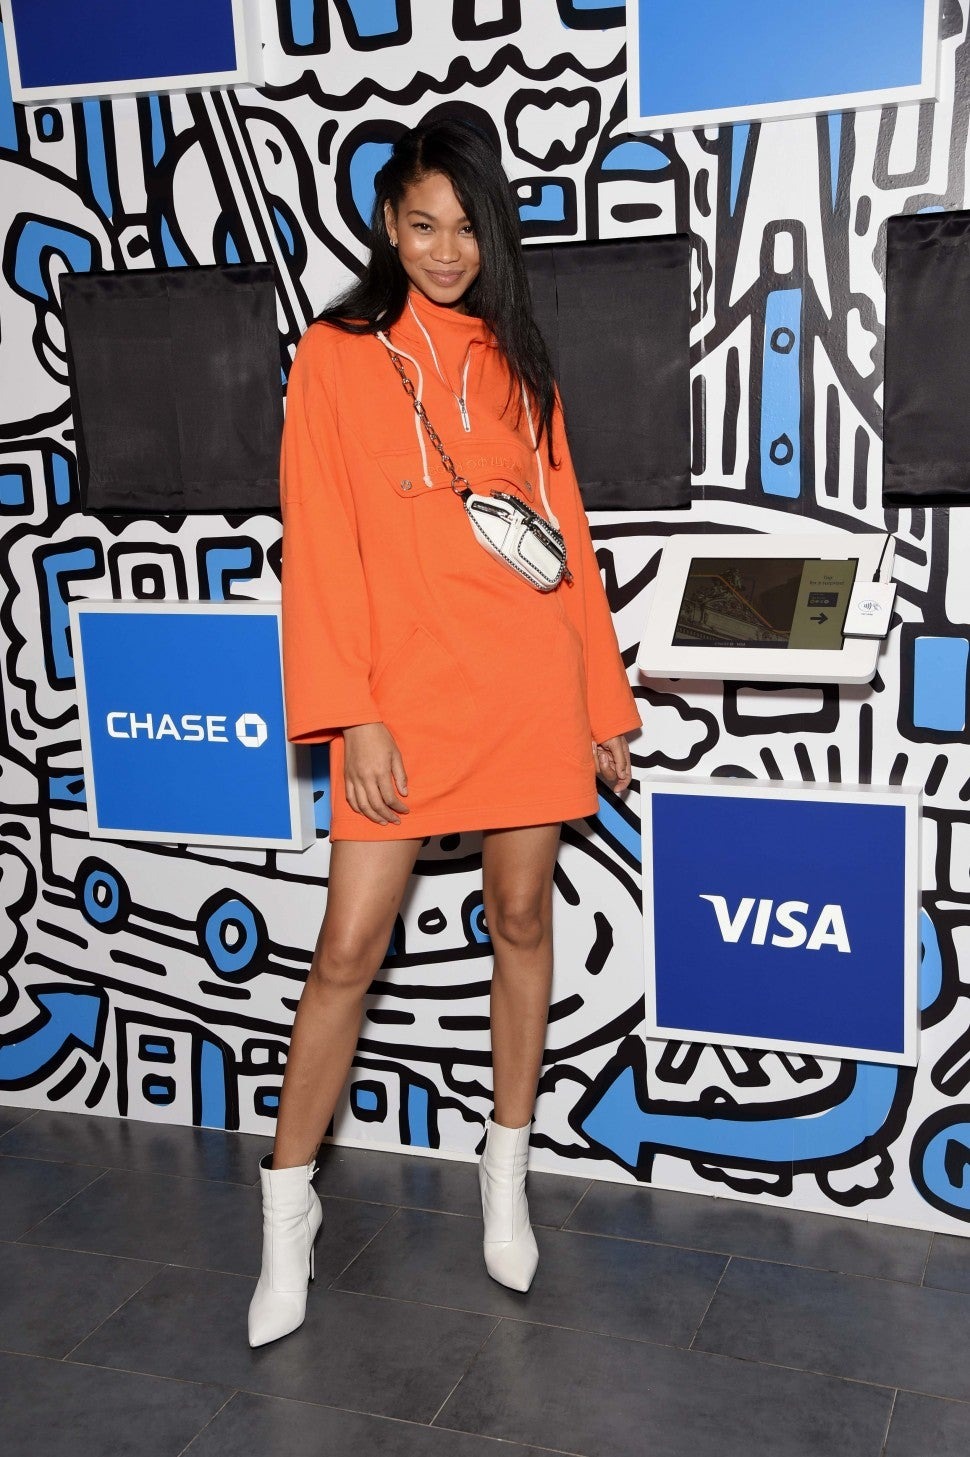 Chanel Iman with visa